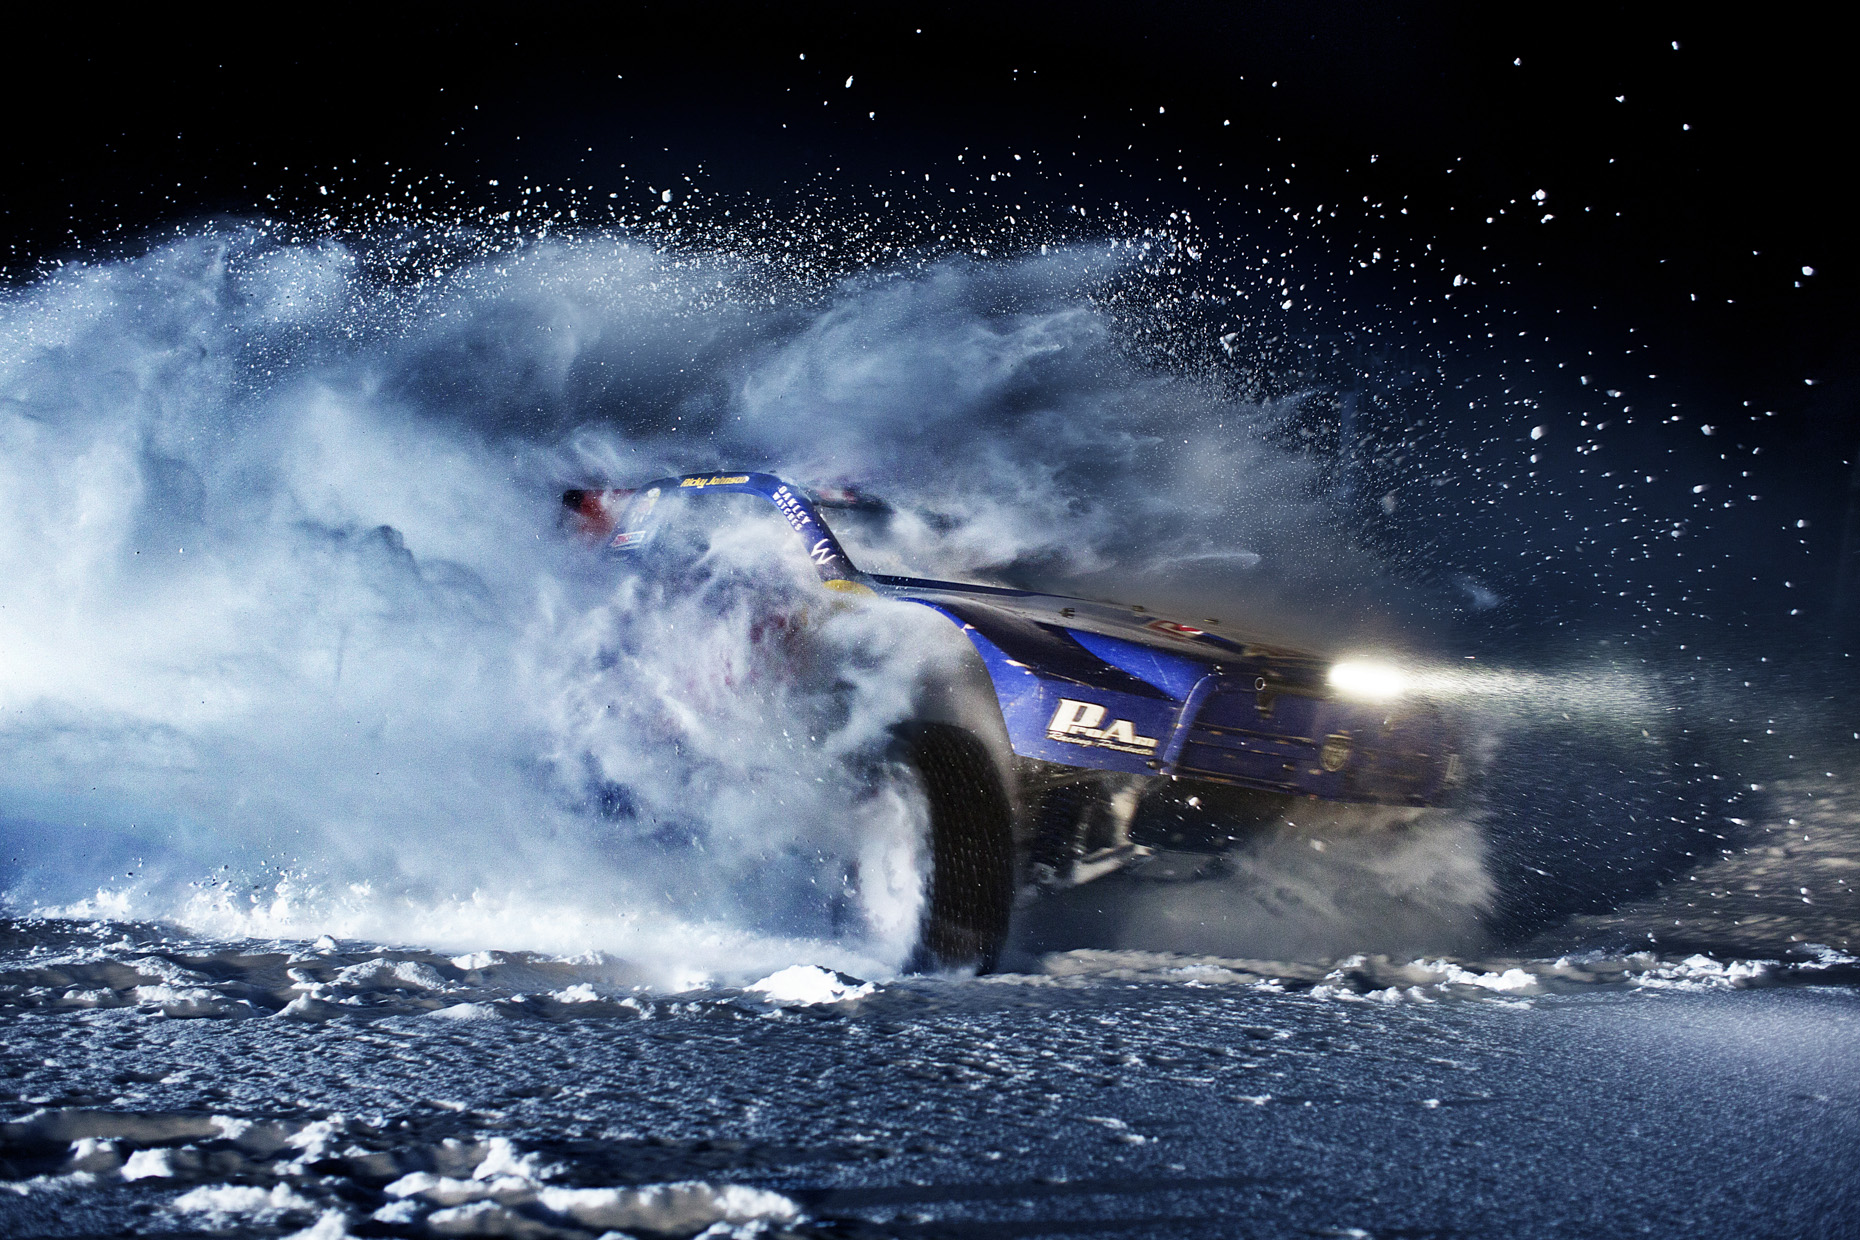 Ricky Johnson Frozen Rush for Red Bull by Boston based commercial sports photographer Brian Nevins